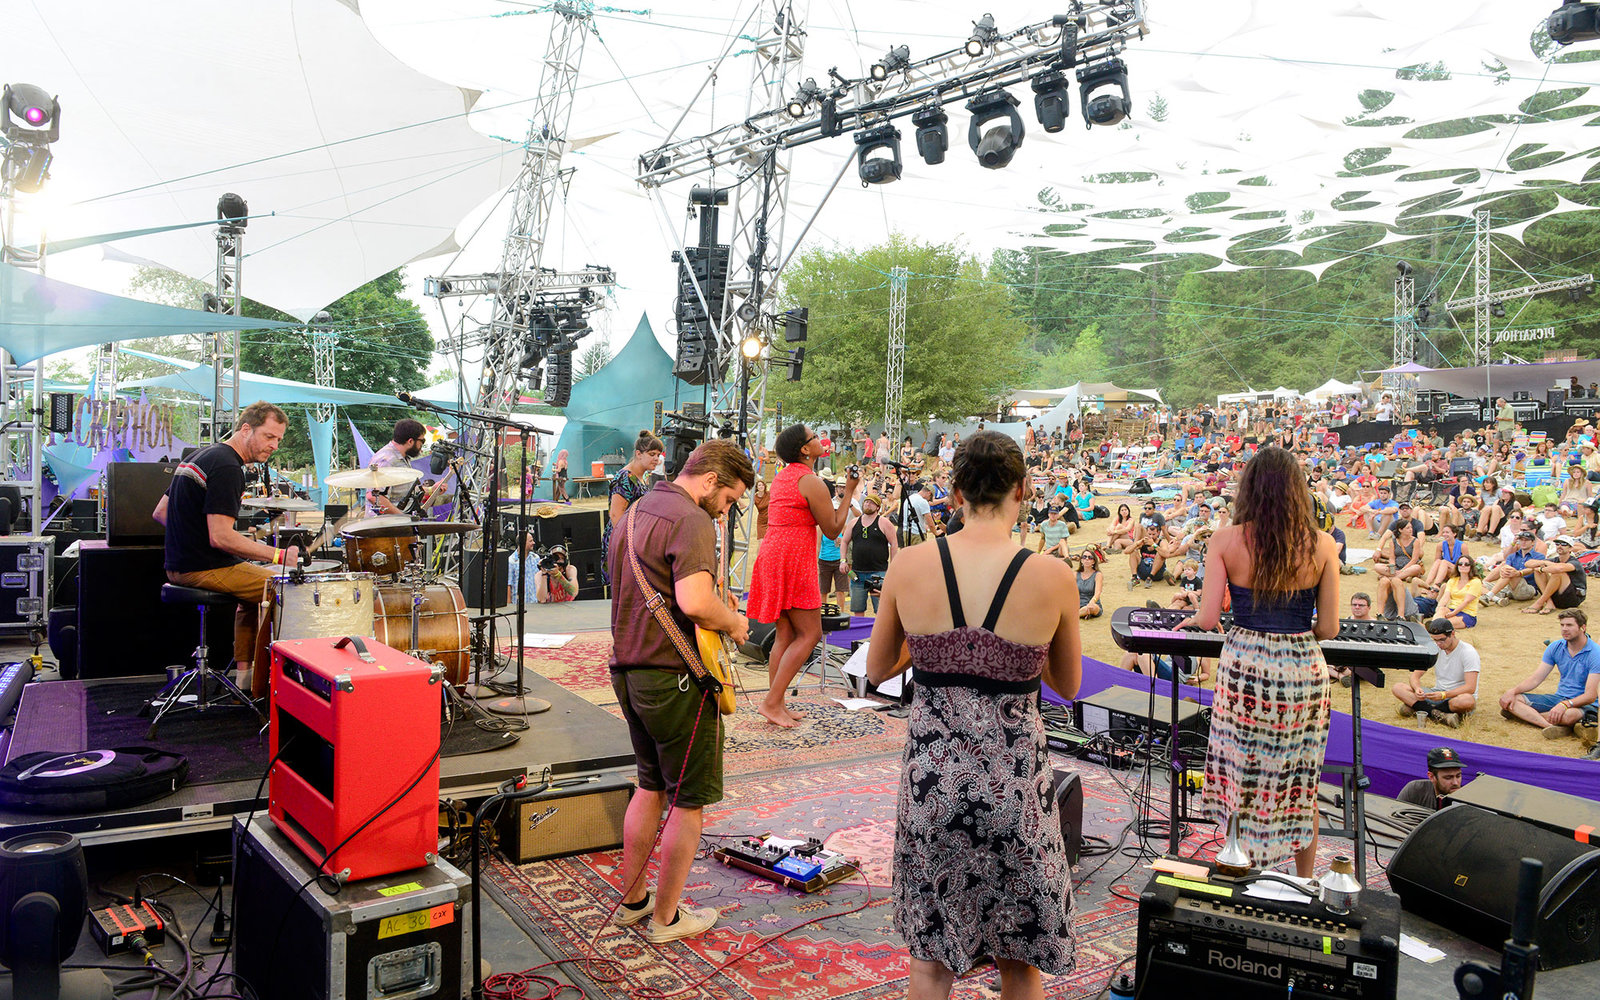 HAPPY VALLEY, OR - AUGUST 02:  Liz Vice performs on stage at Pickathon festival at Pendarvis Farm on August 2, 2015 in Happy Valley, Oregon.  (Photo by Anthony Pidgeon/Redferns)